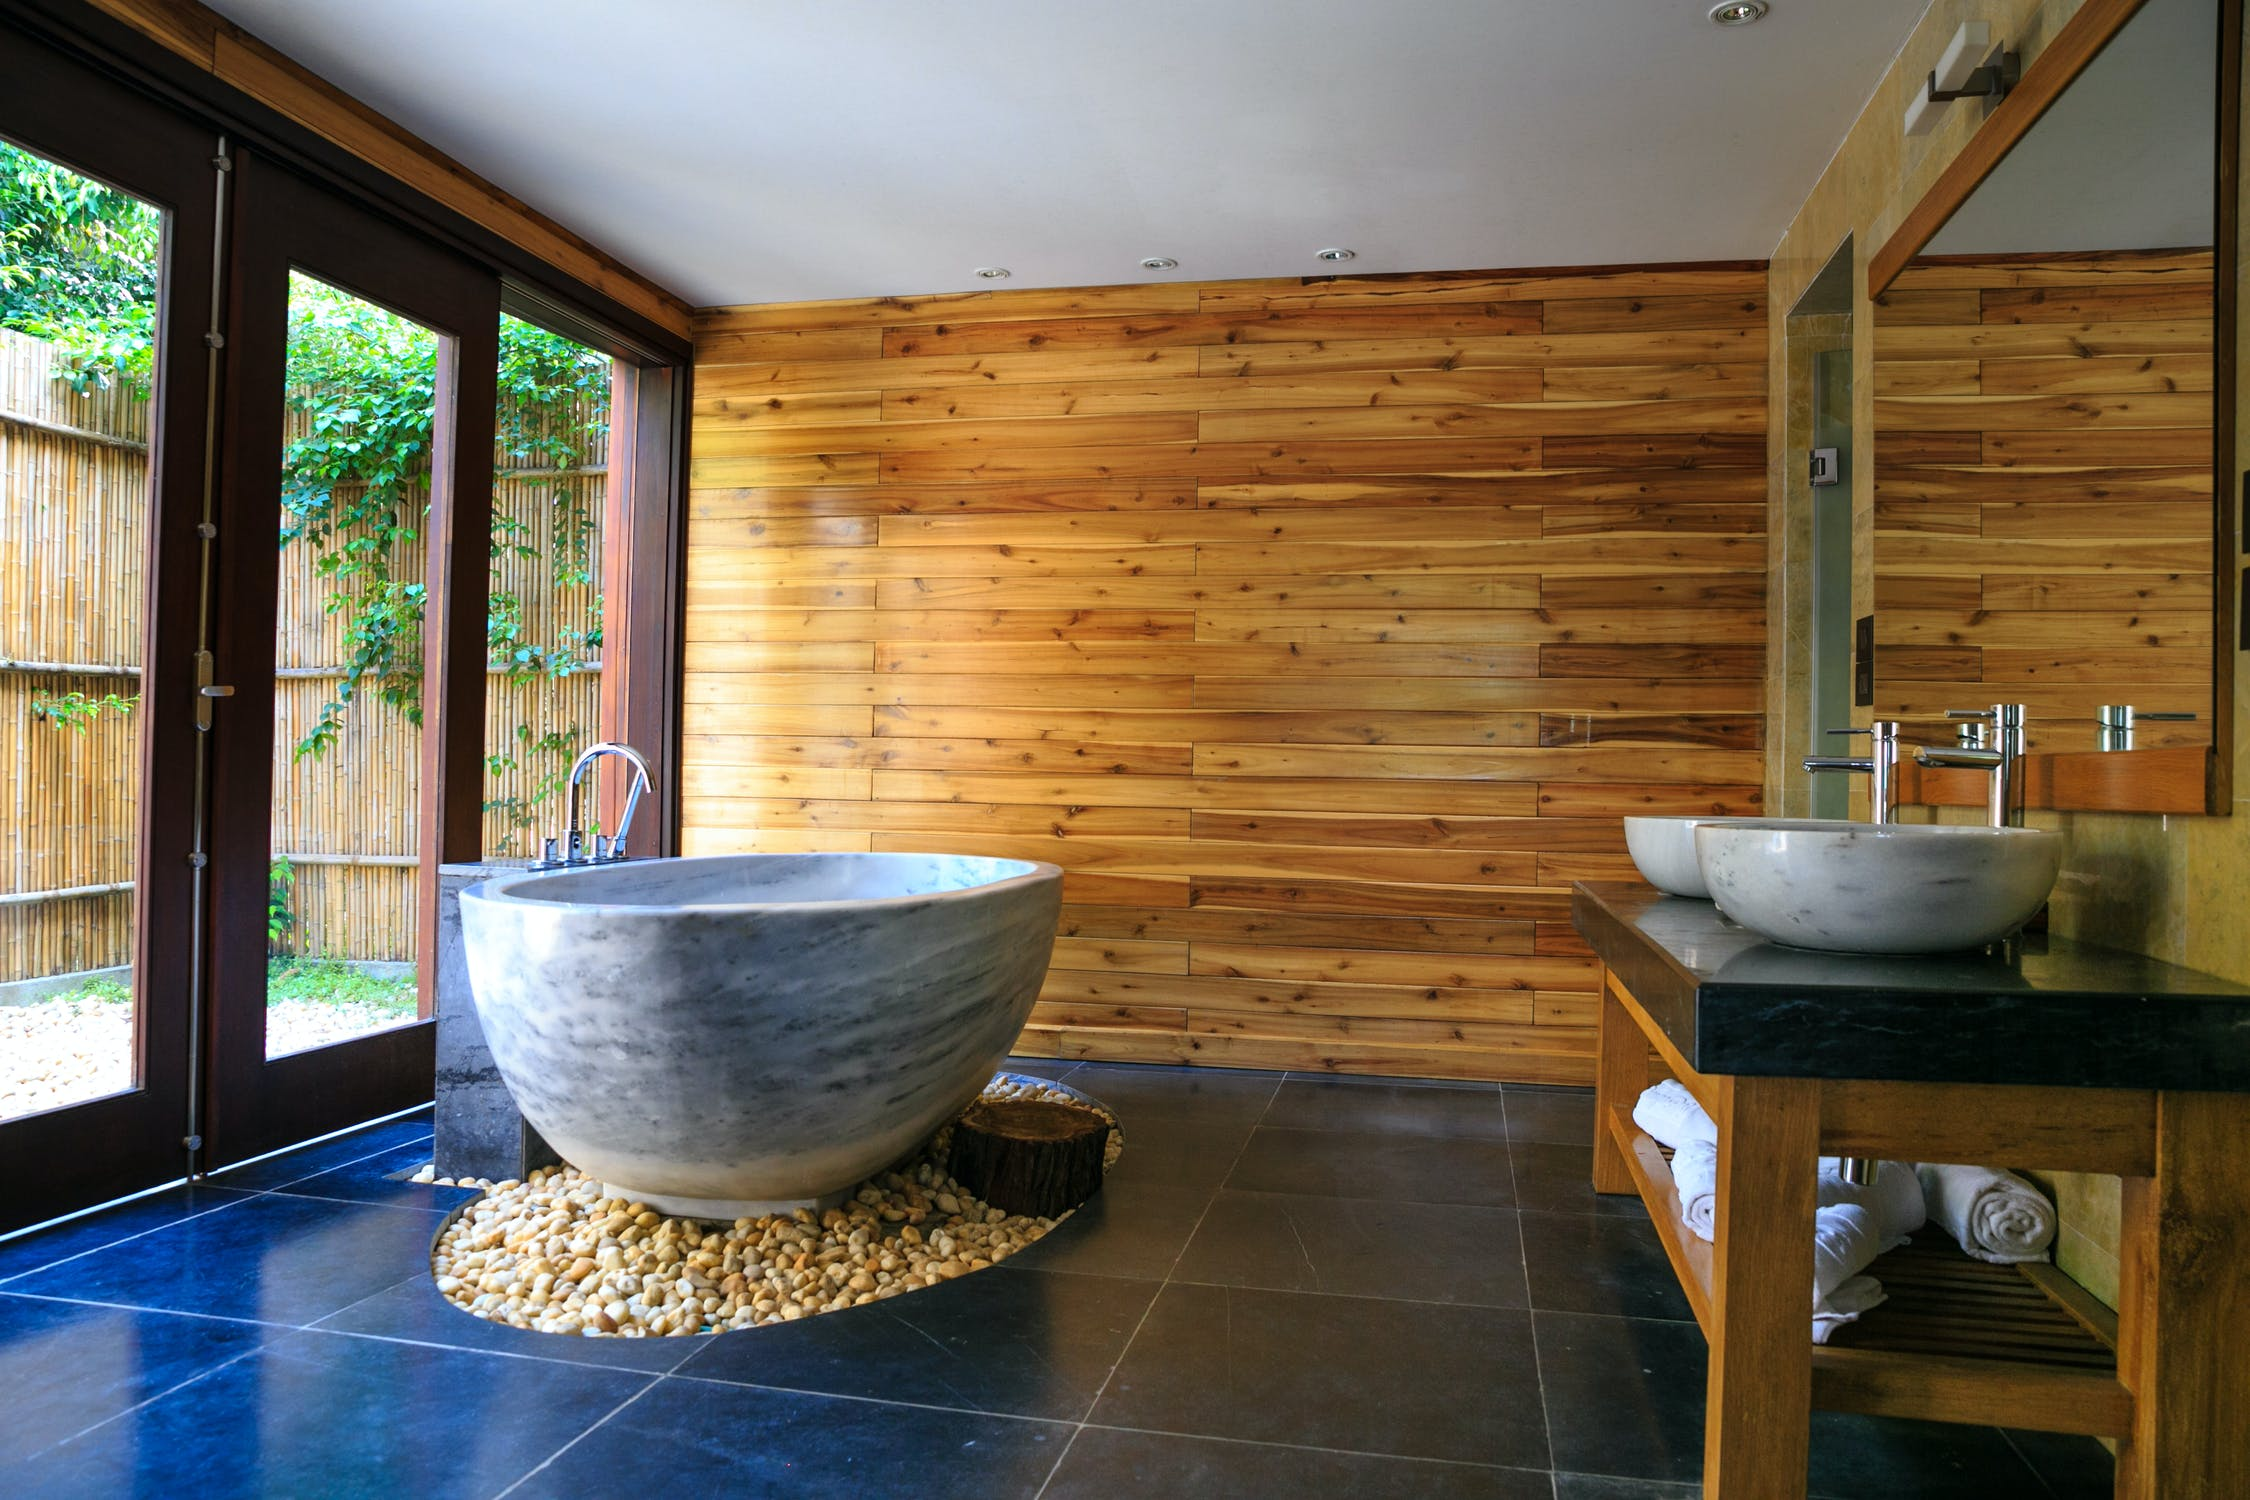 Top Bathroom Design Trends There's Still Time Embrace To This Year